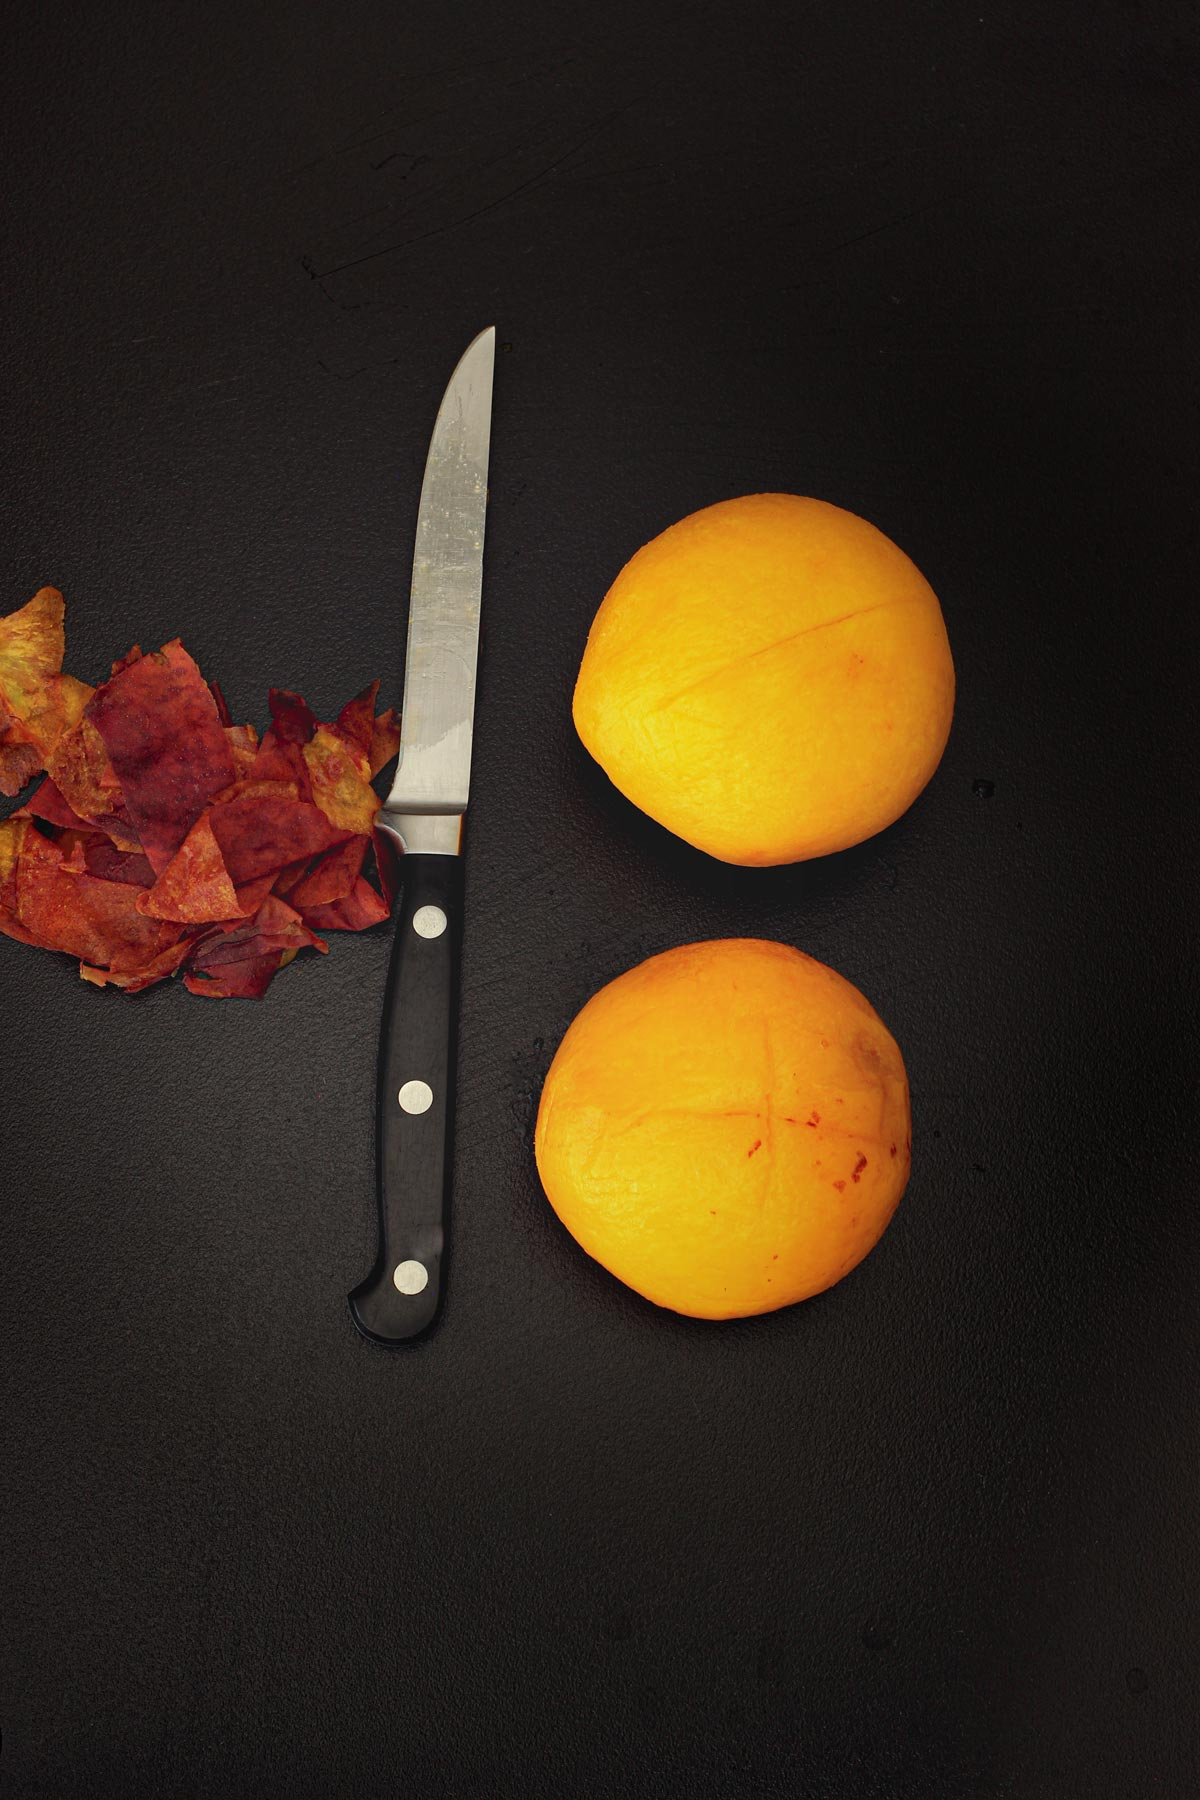 two peeled peaches on black table top next to knife and pile of skin.